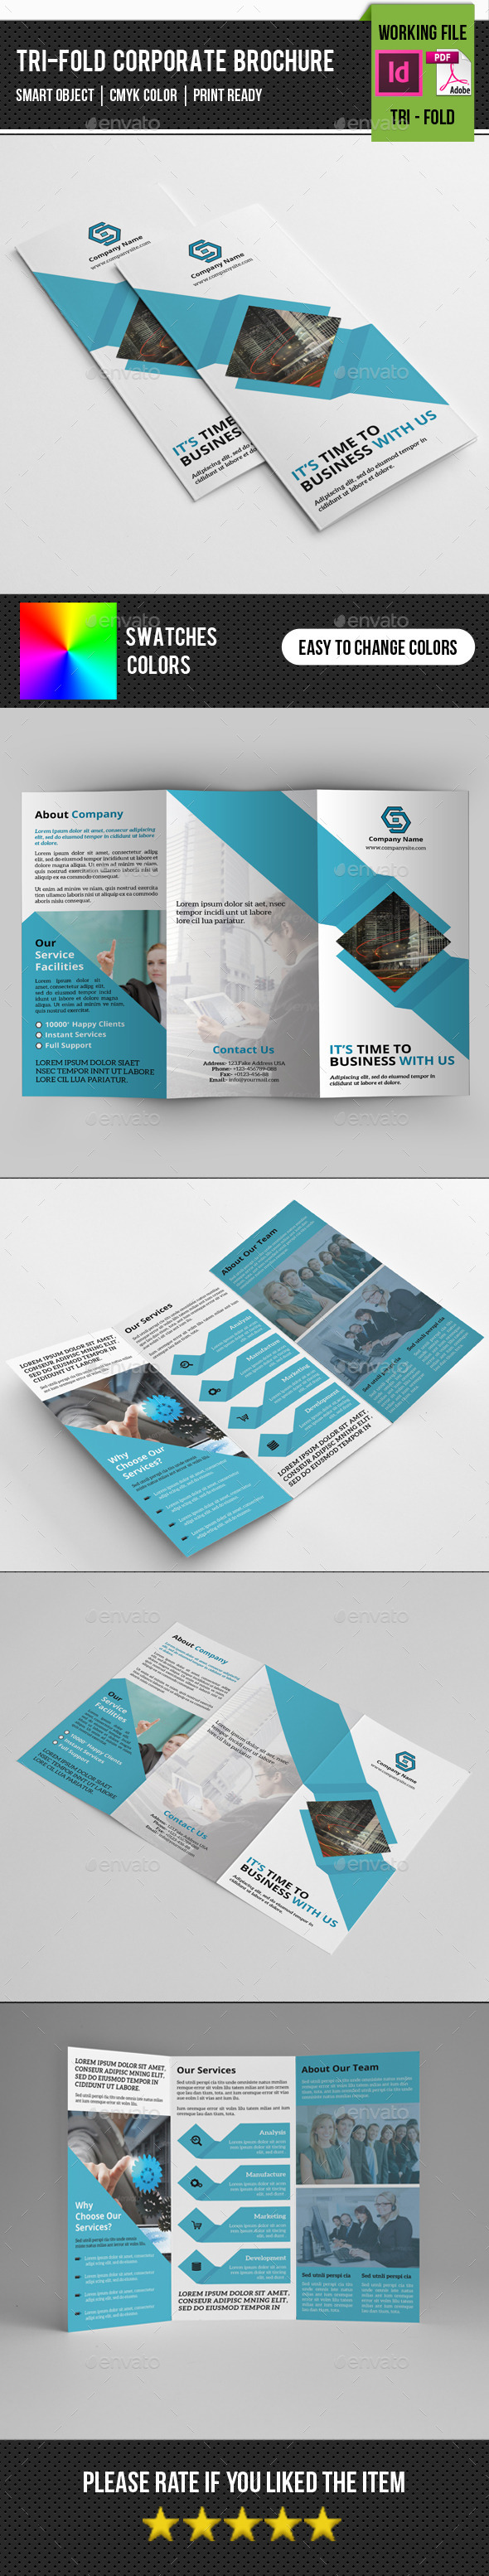 GraphicRiver Corporate Trifold Brochure-V234 11239993